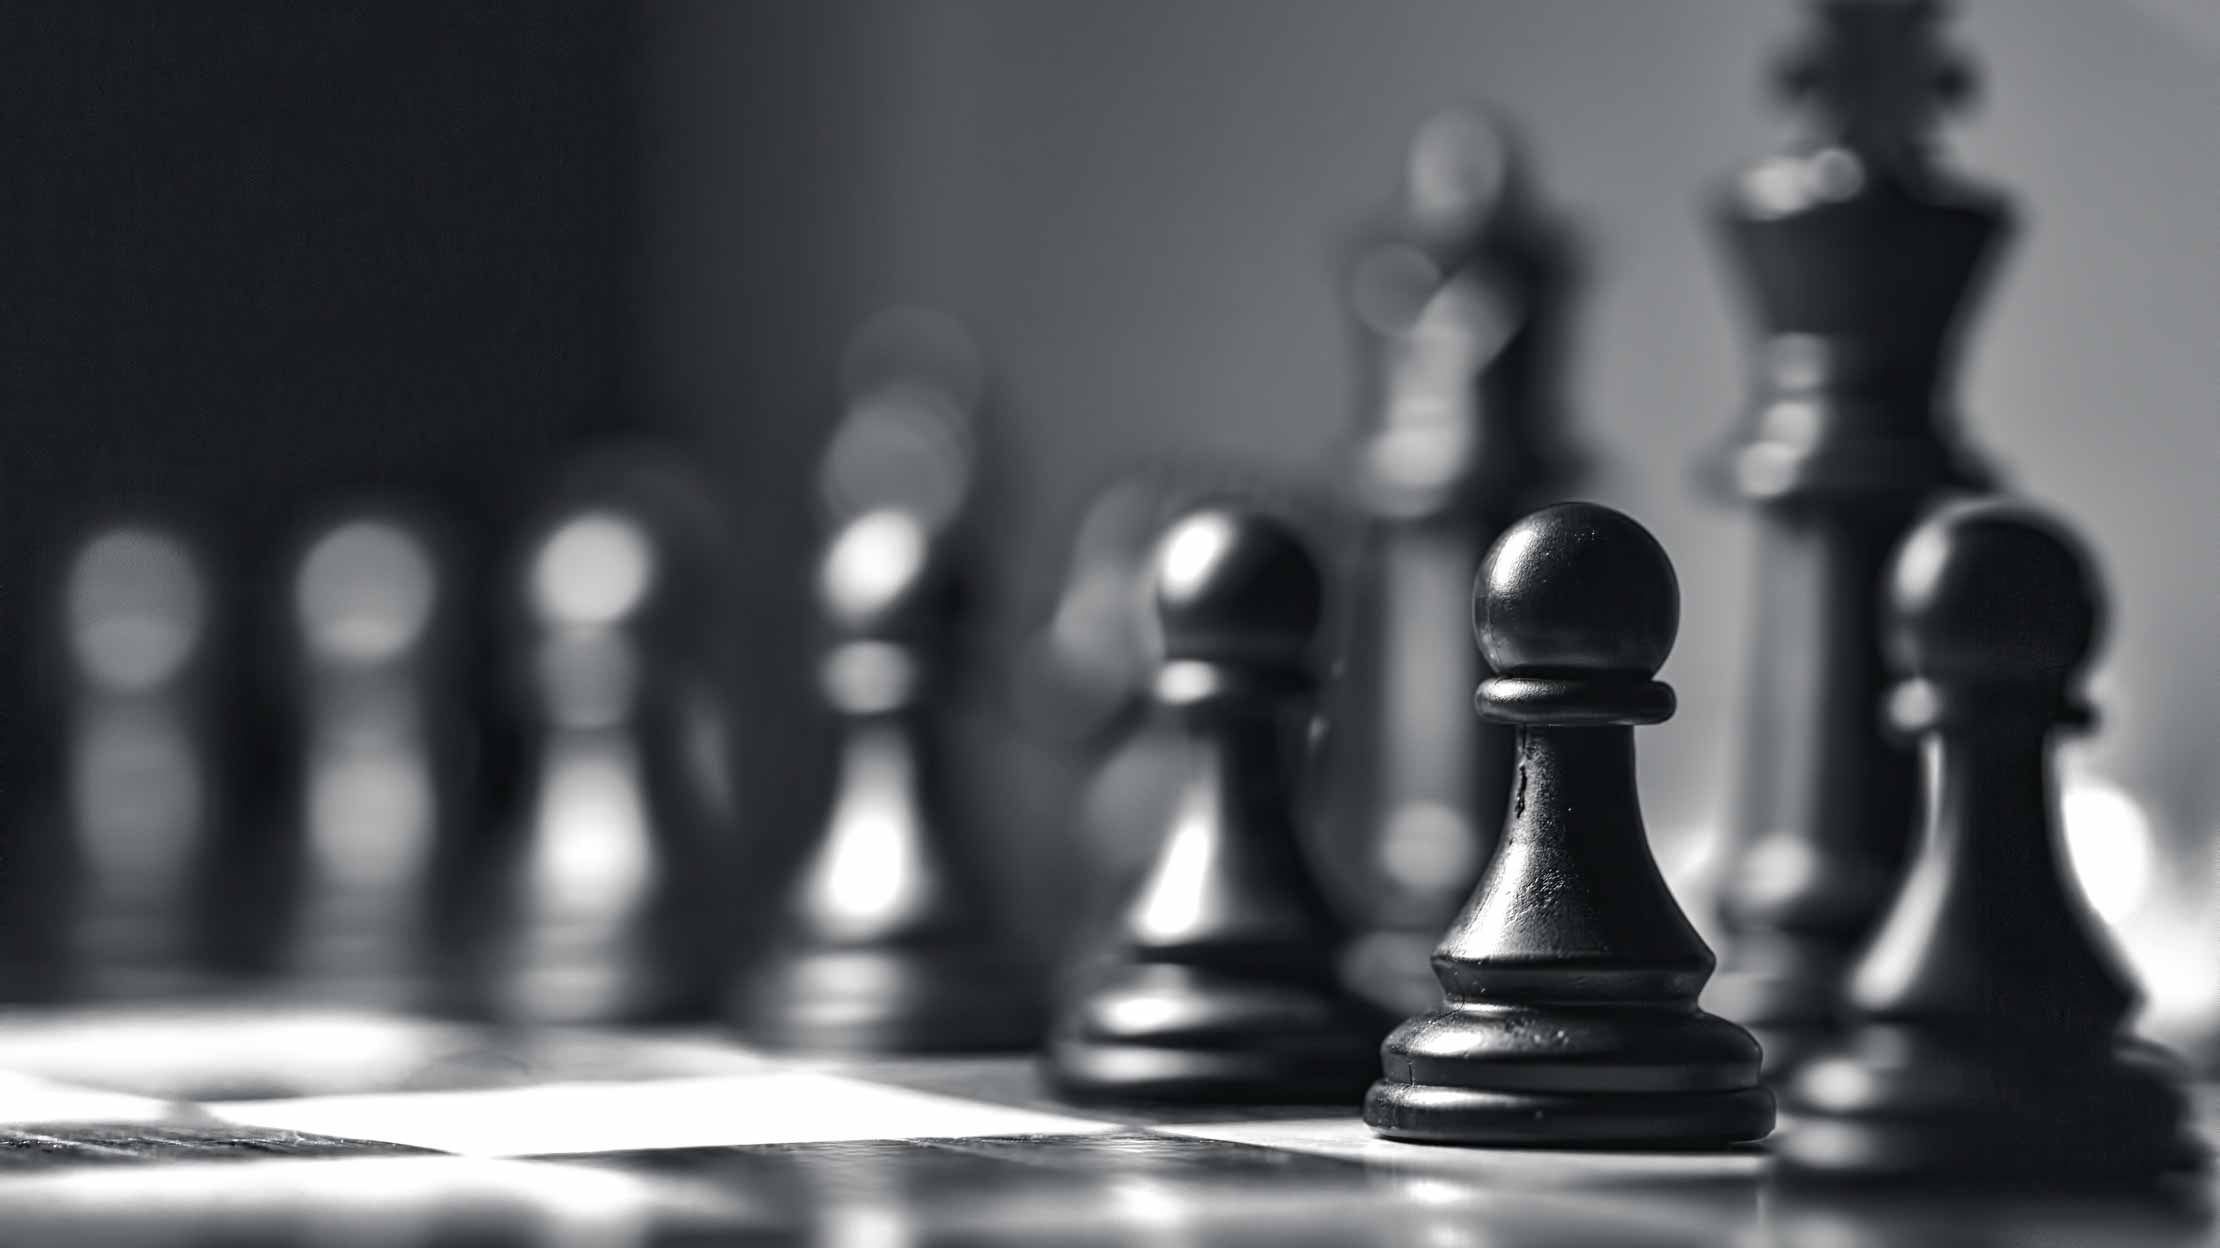 Black and white image of chess pieces on chessboard